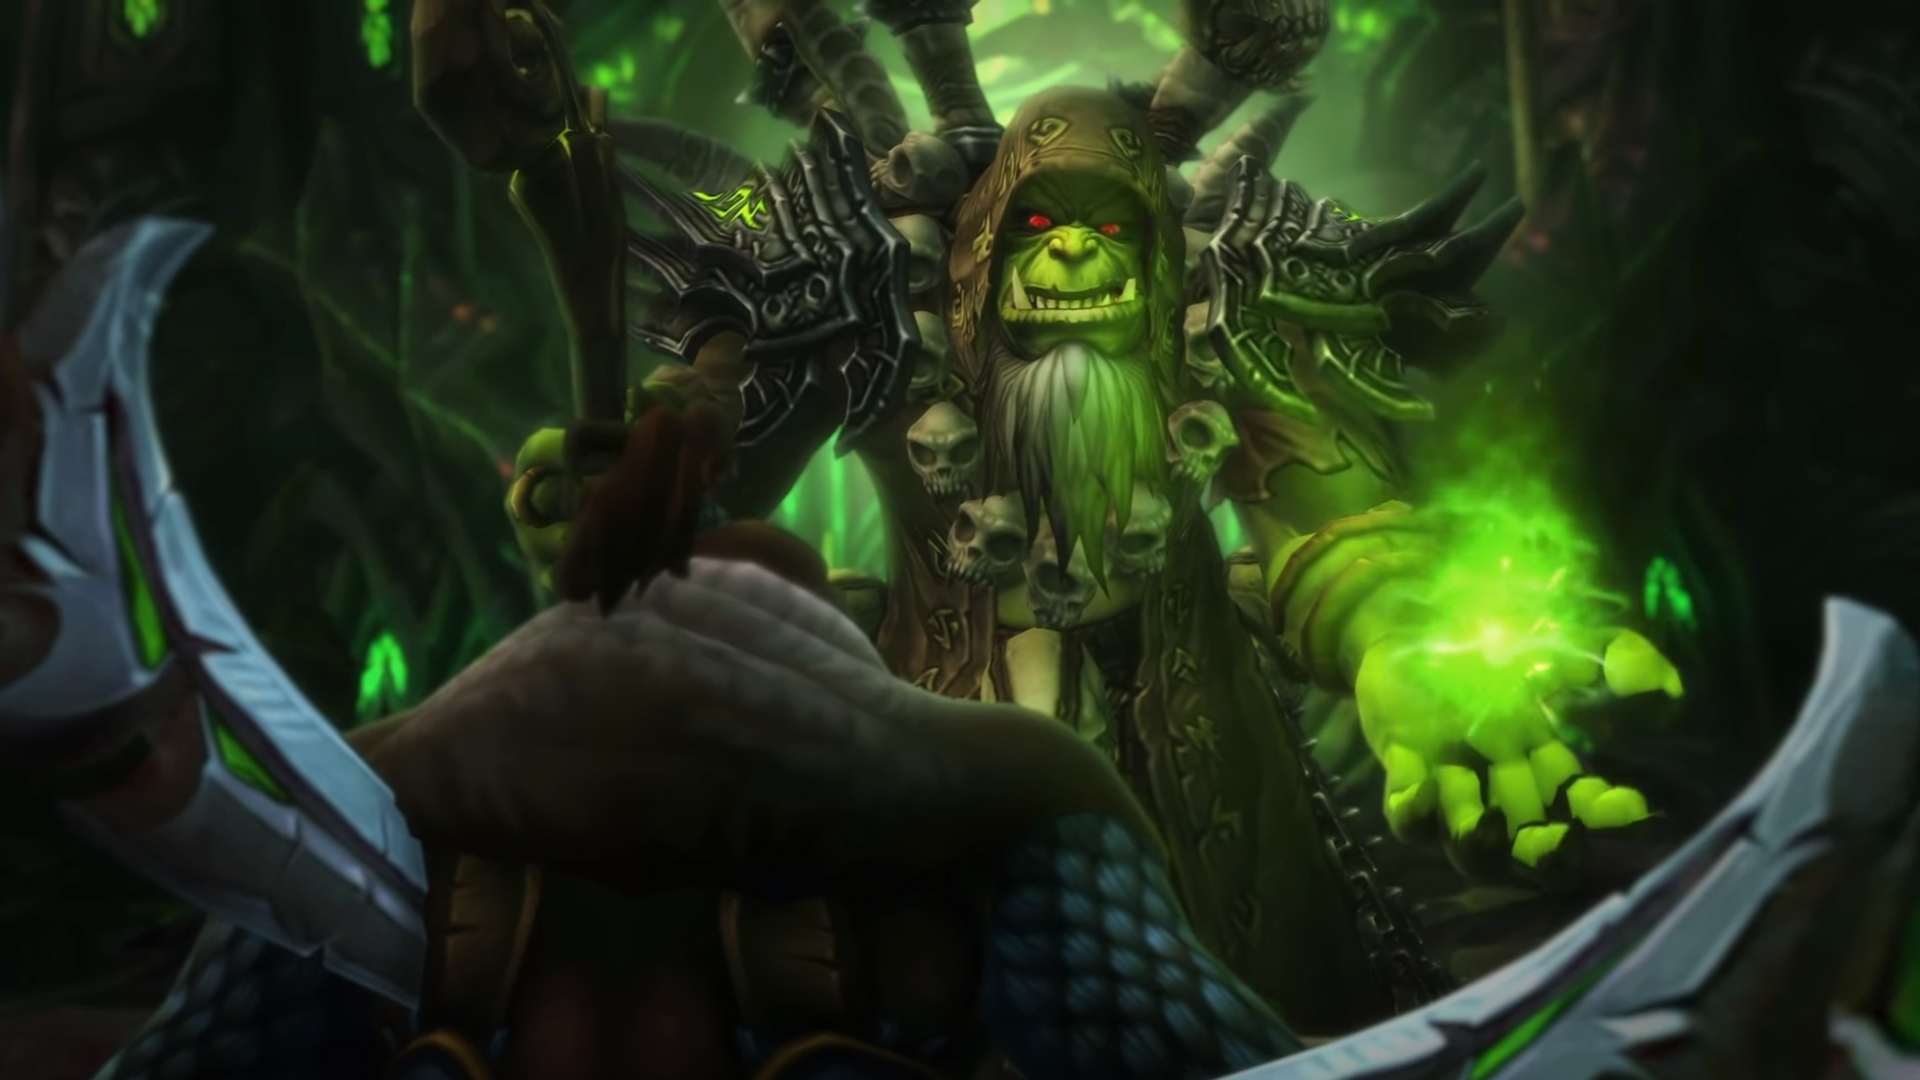 Watch this World of Warcraft player beat one of its toughest raid